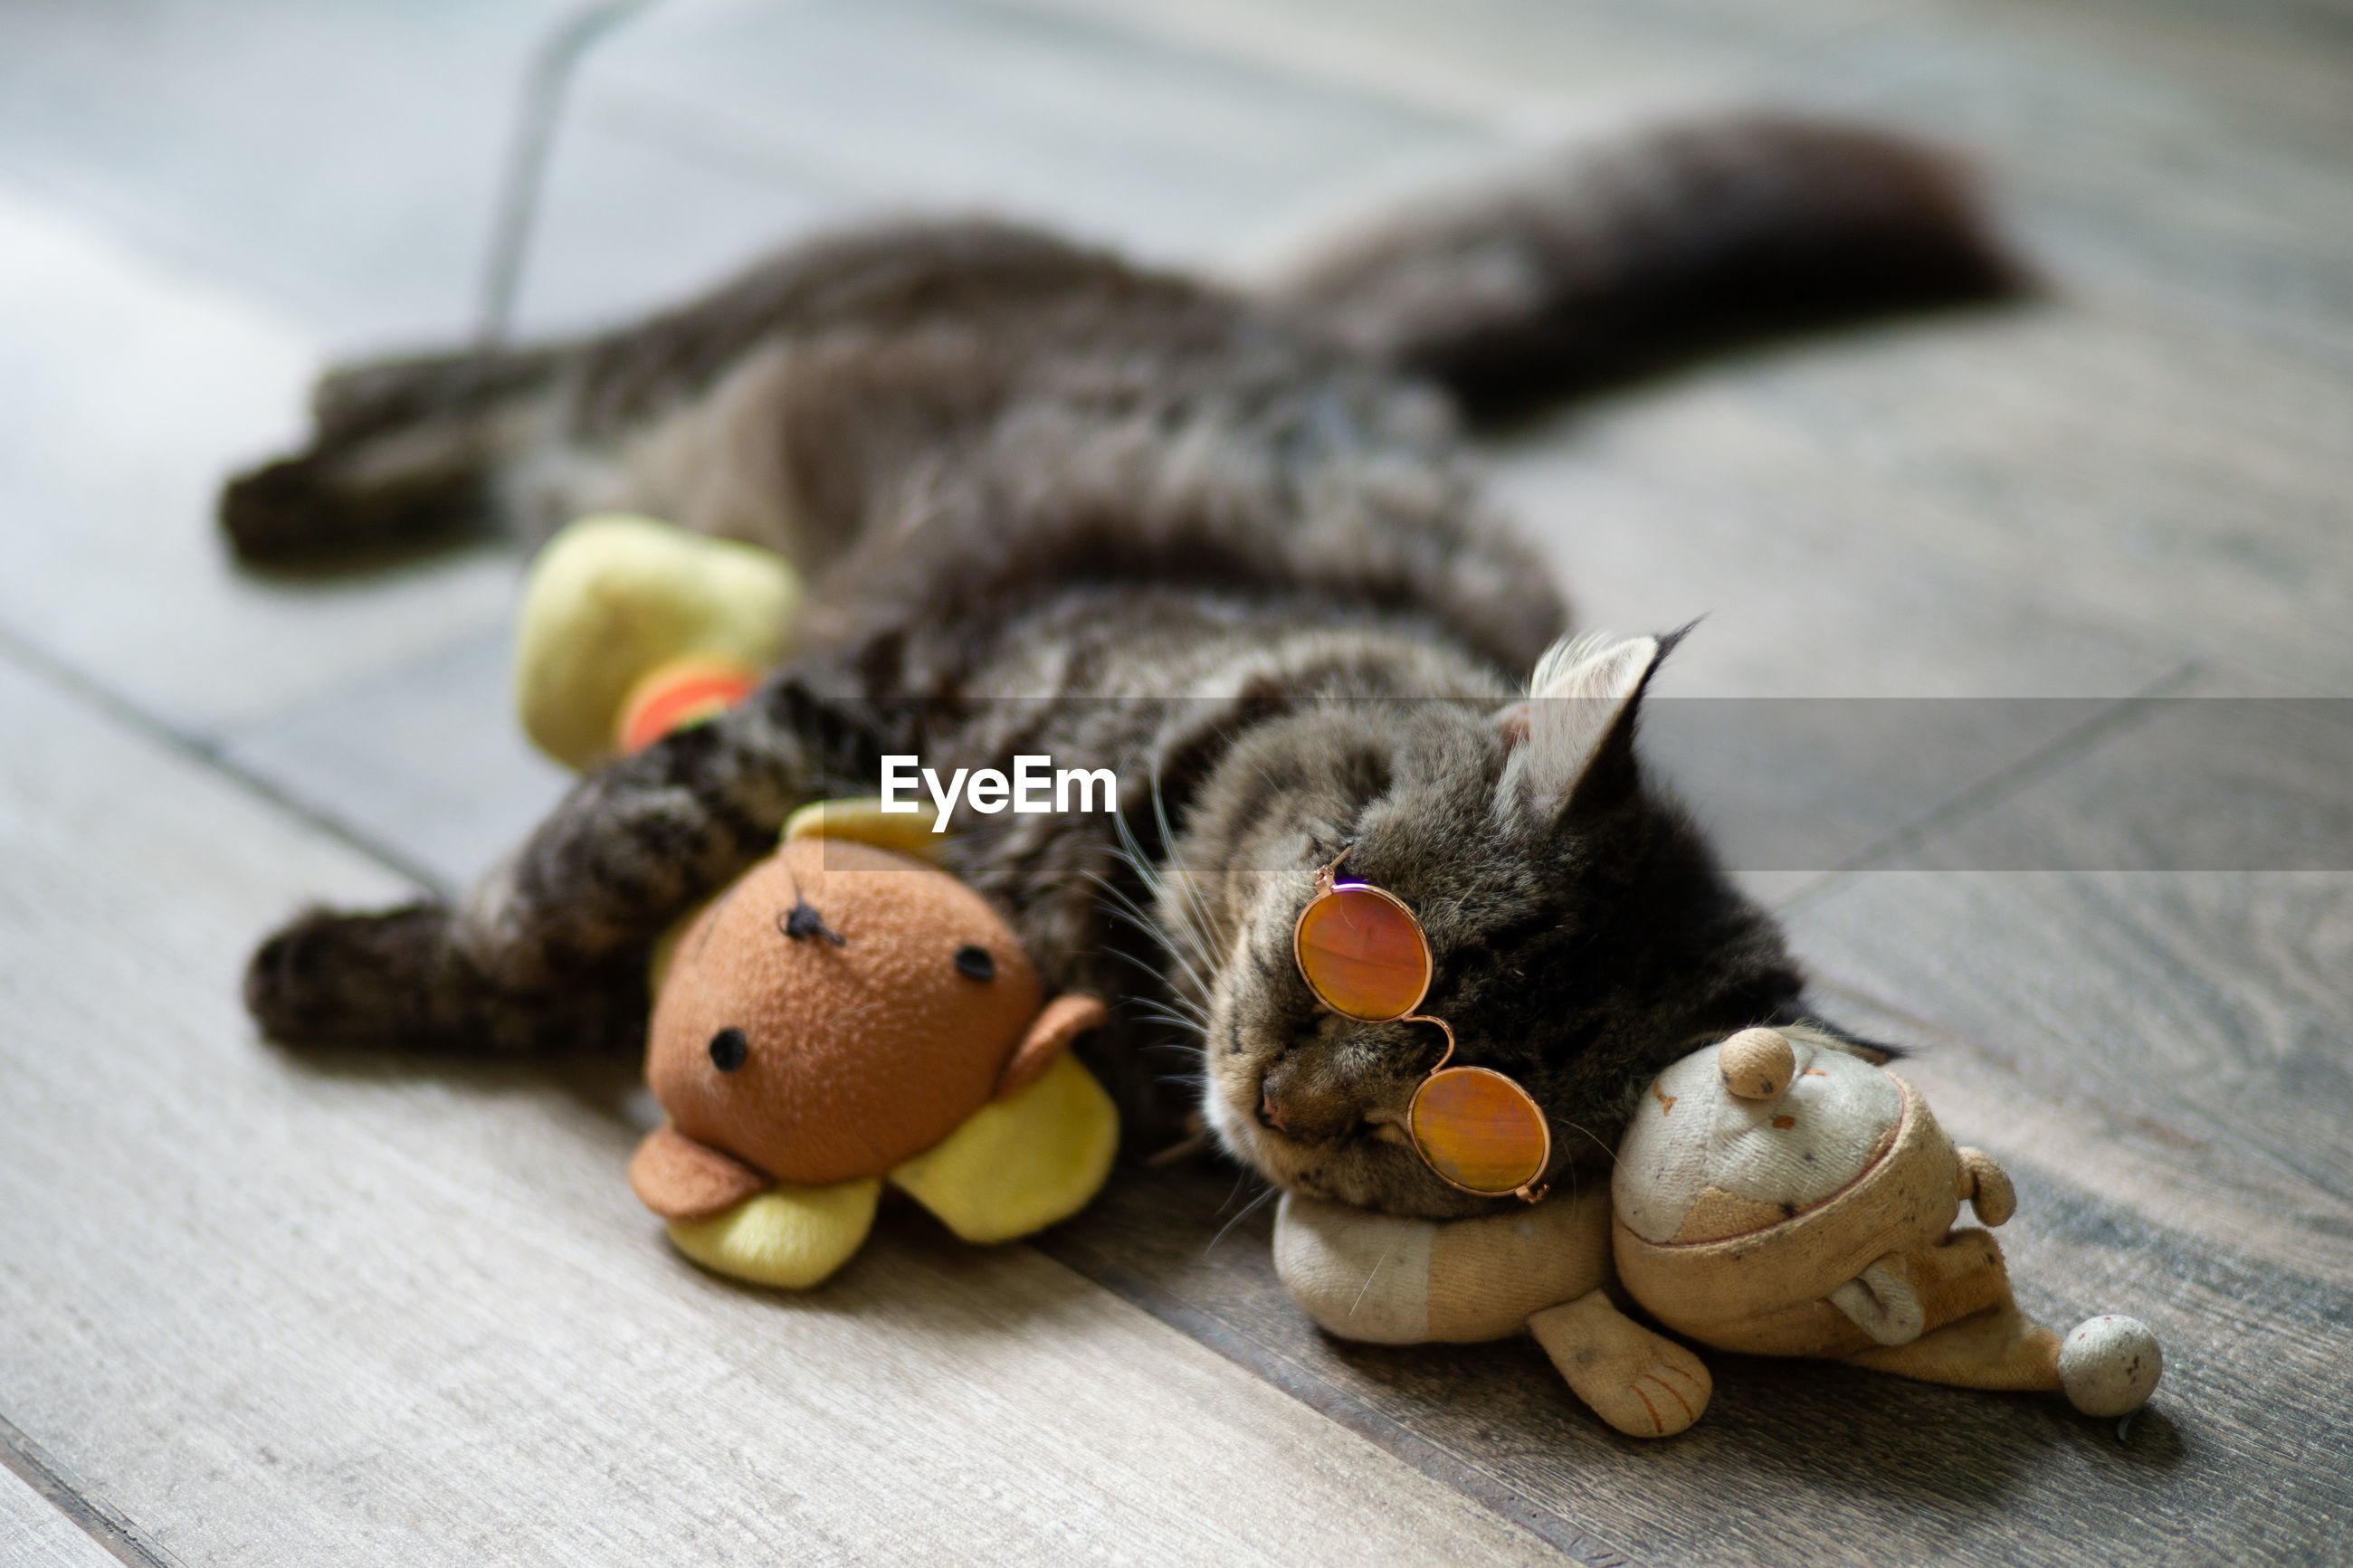 Close-up of cat wearing sunglasses lying with toys on hardwood floor